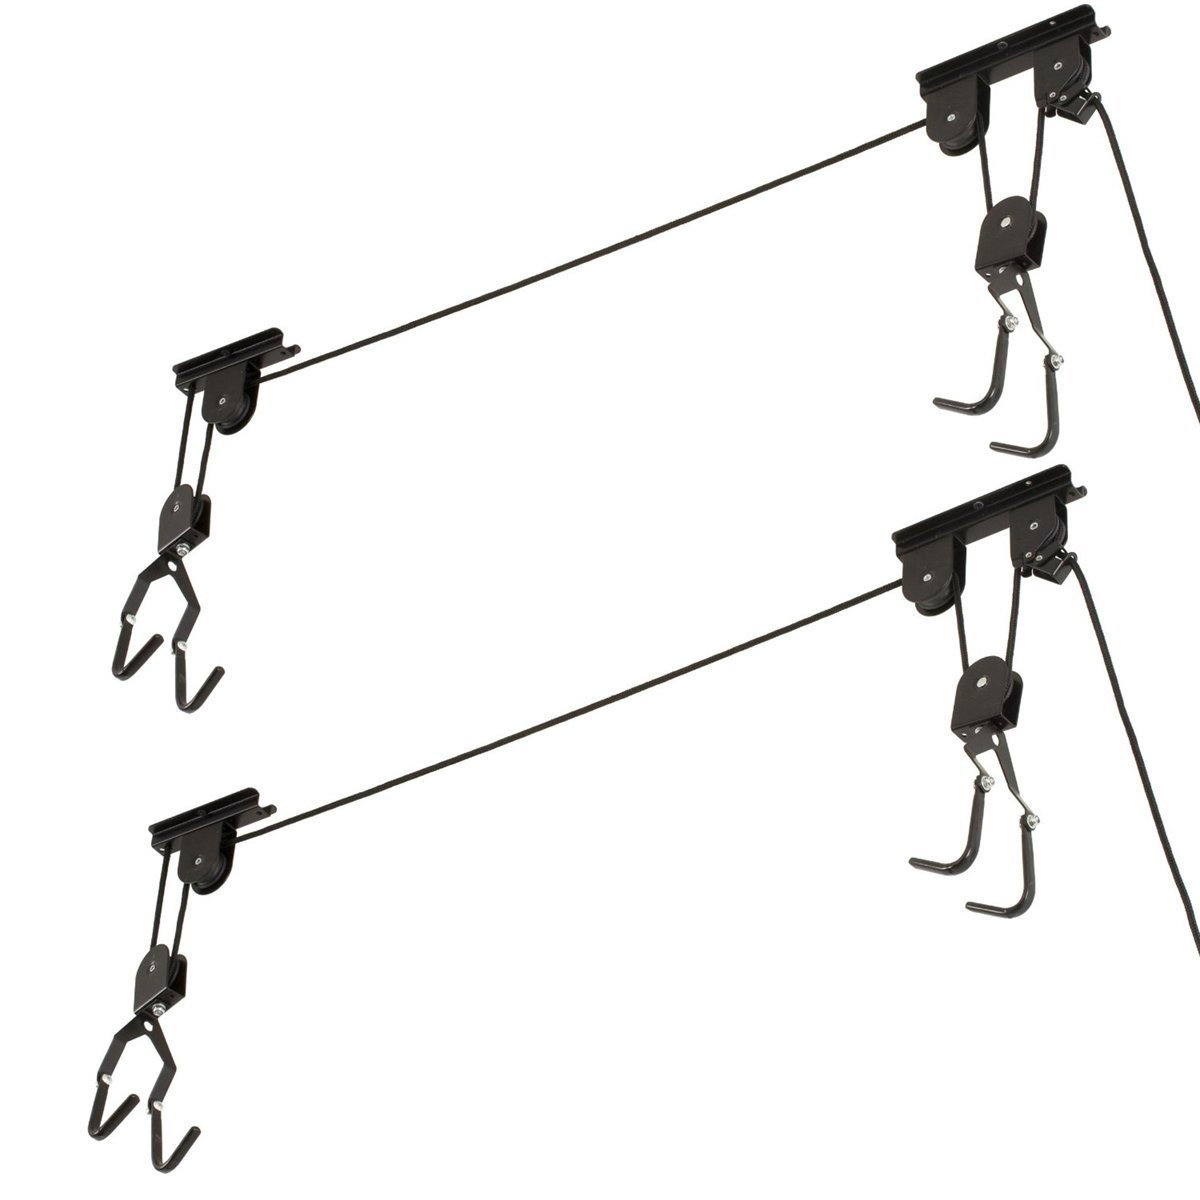 Racor 2-Pack Ceiling Bike Lift